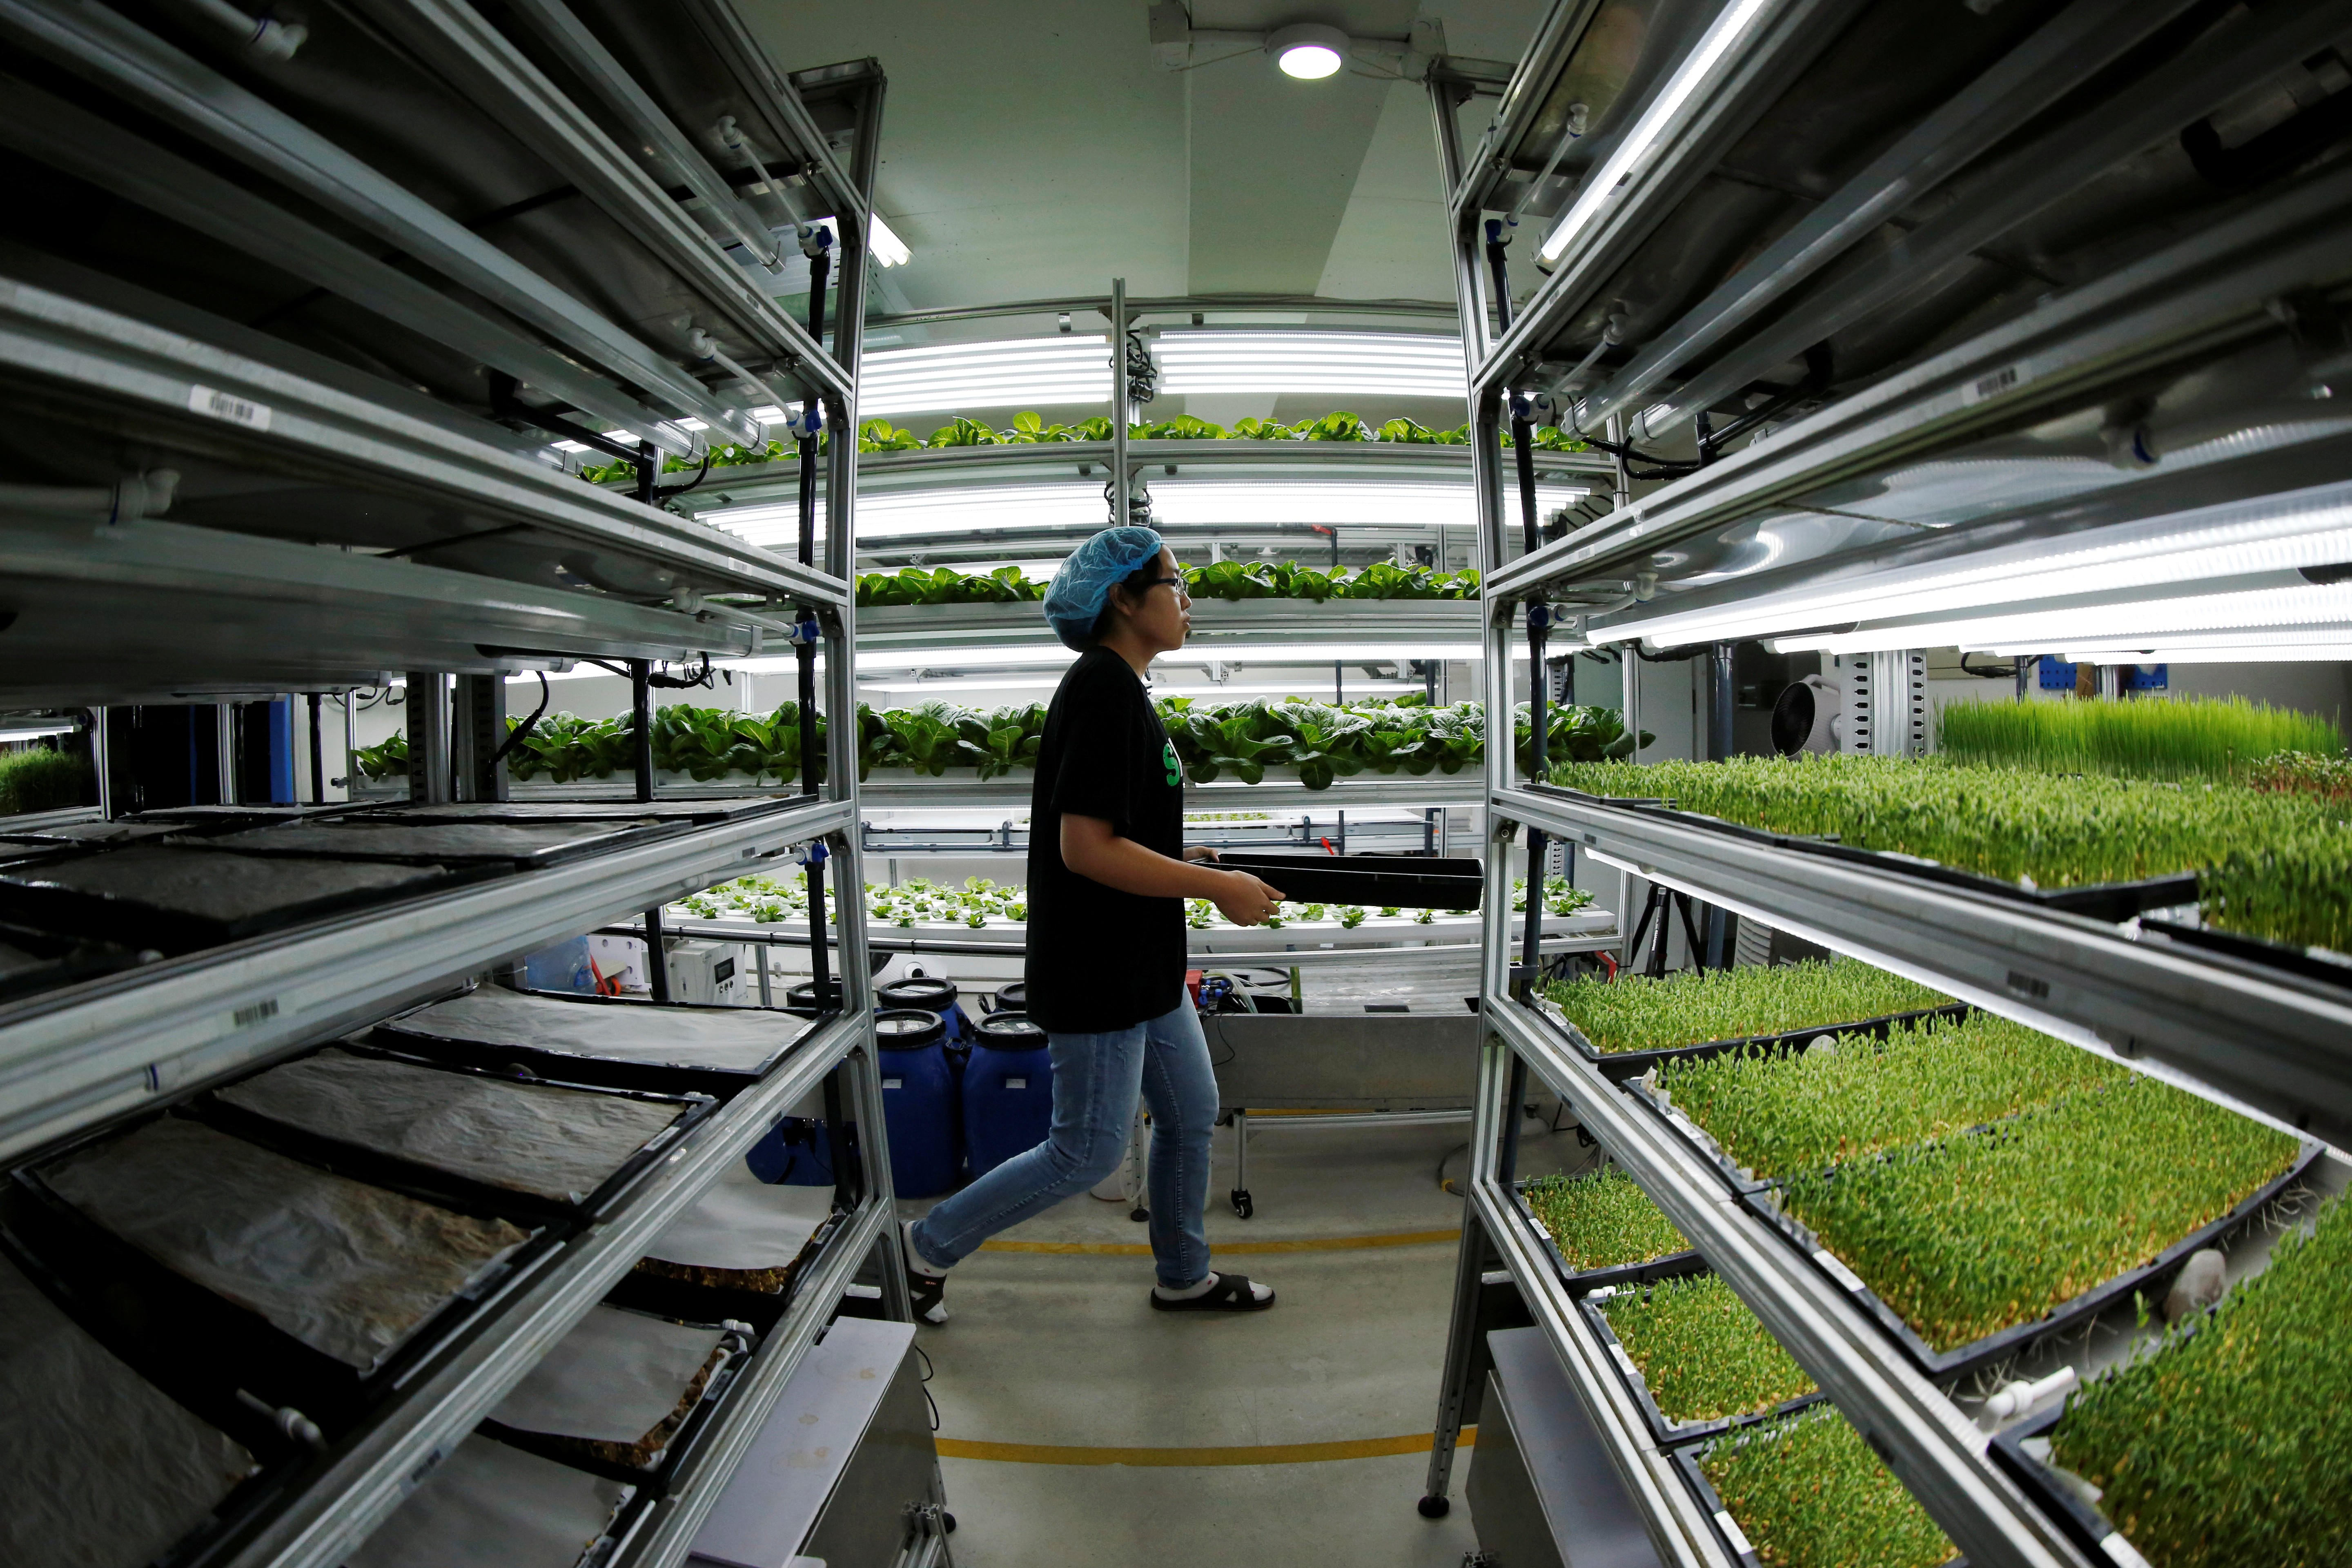 A staff member walks to harvest microgreens at an indoor hydroponic vegetable farming facility of Alesca Life.